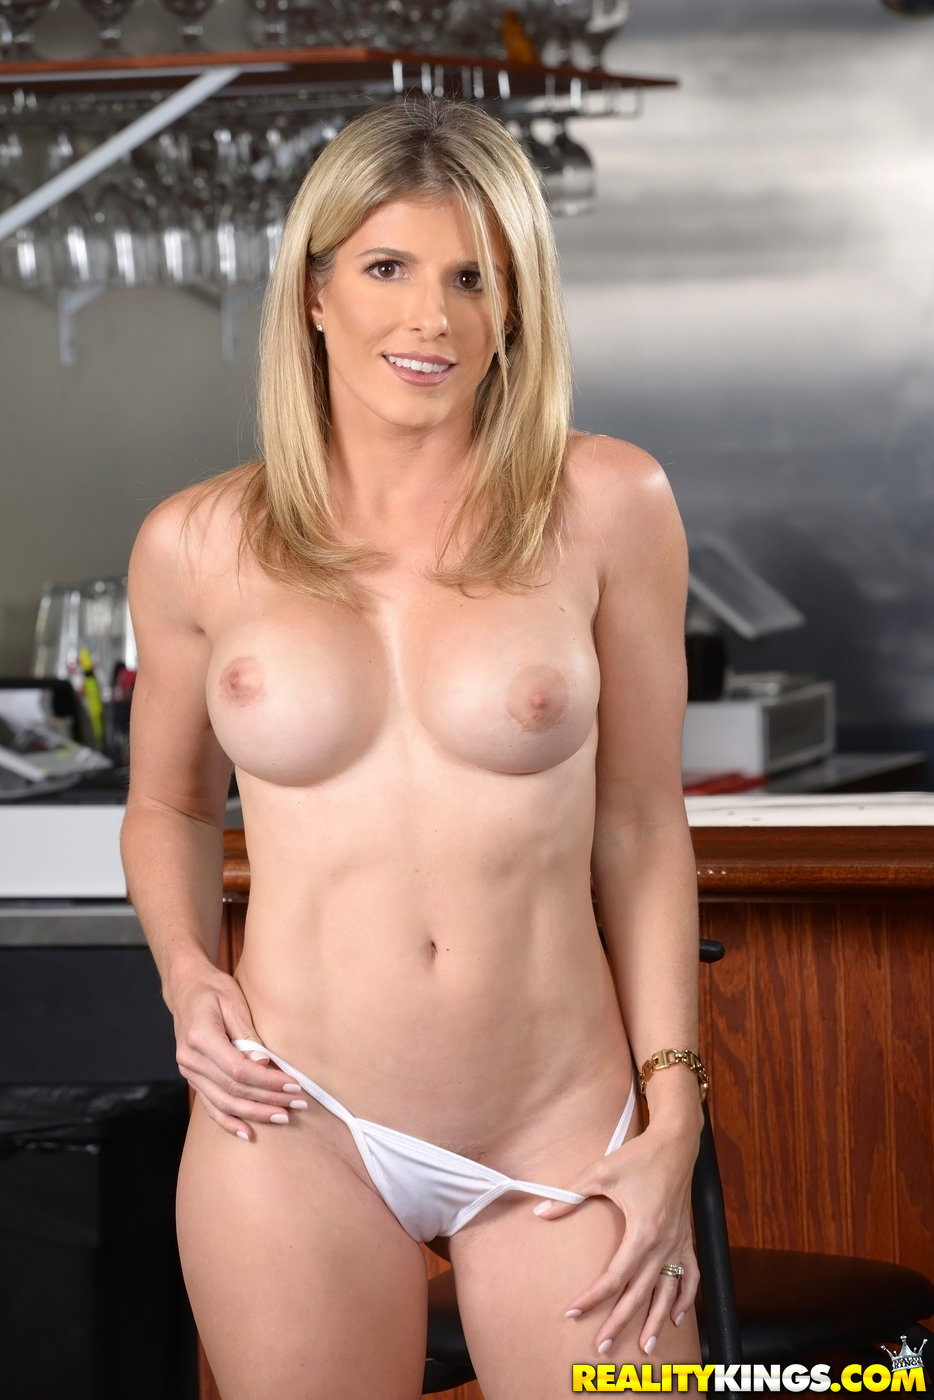 Busty Blonde Milf Takes Off Her White Dress And Helps Her -5252